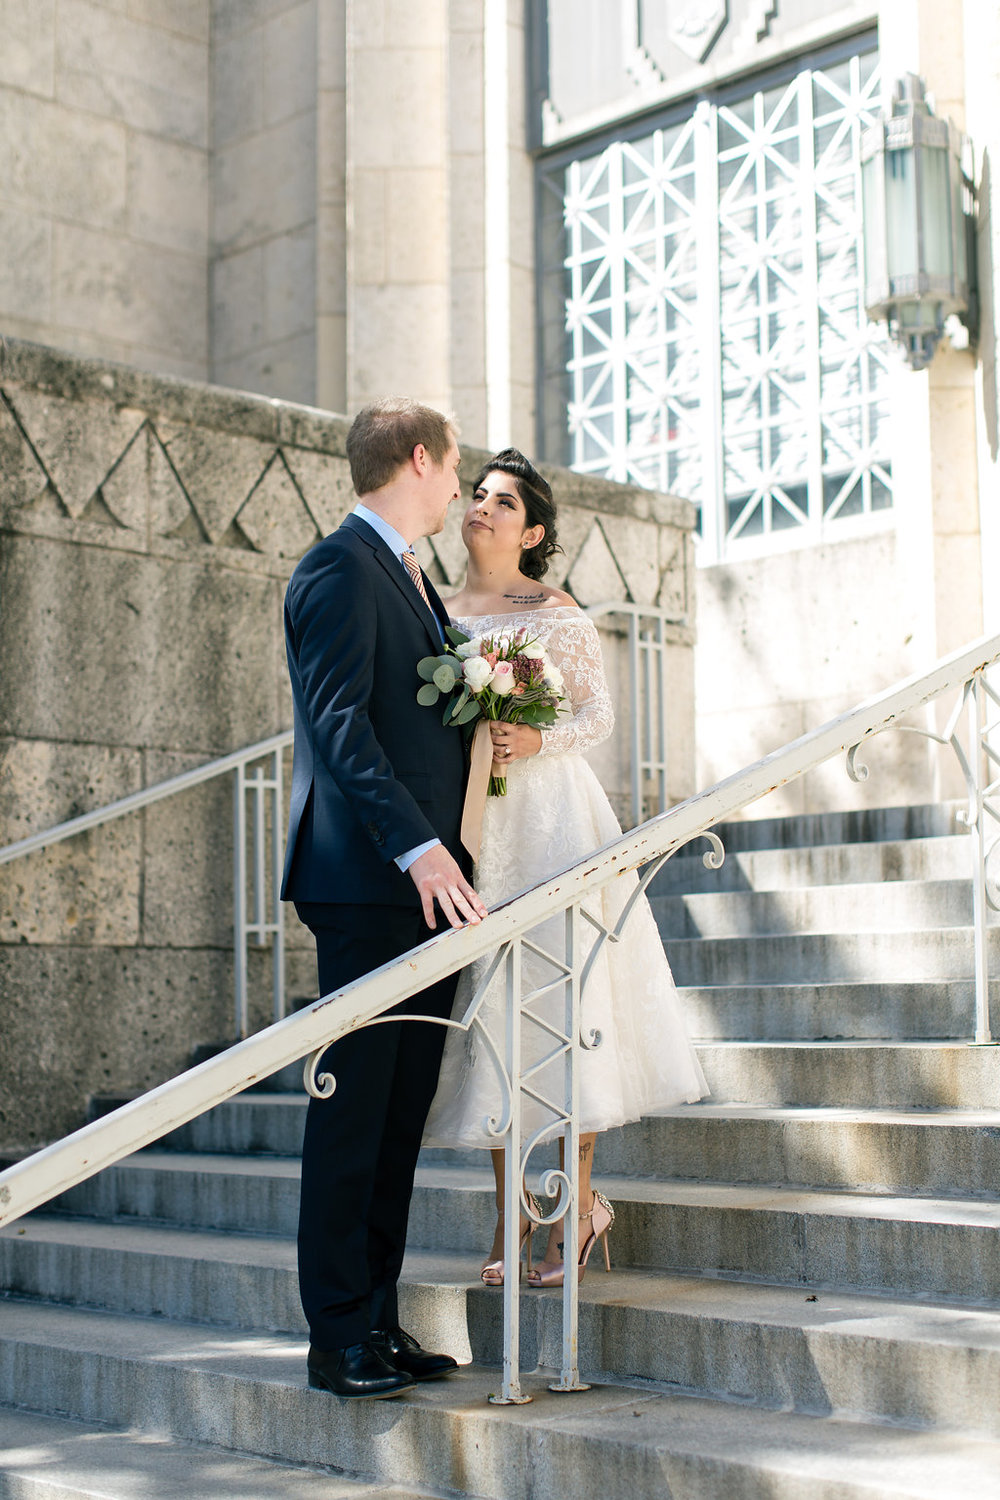 Paige-Newton-Photography-Elopement-Photographer-Austin-Courthouse-Fresas-Chicken0006.jpg